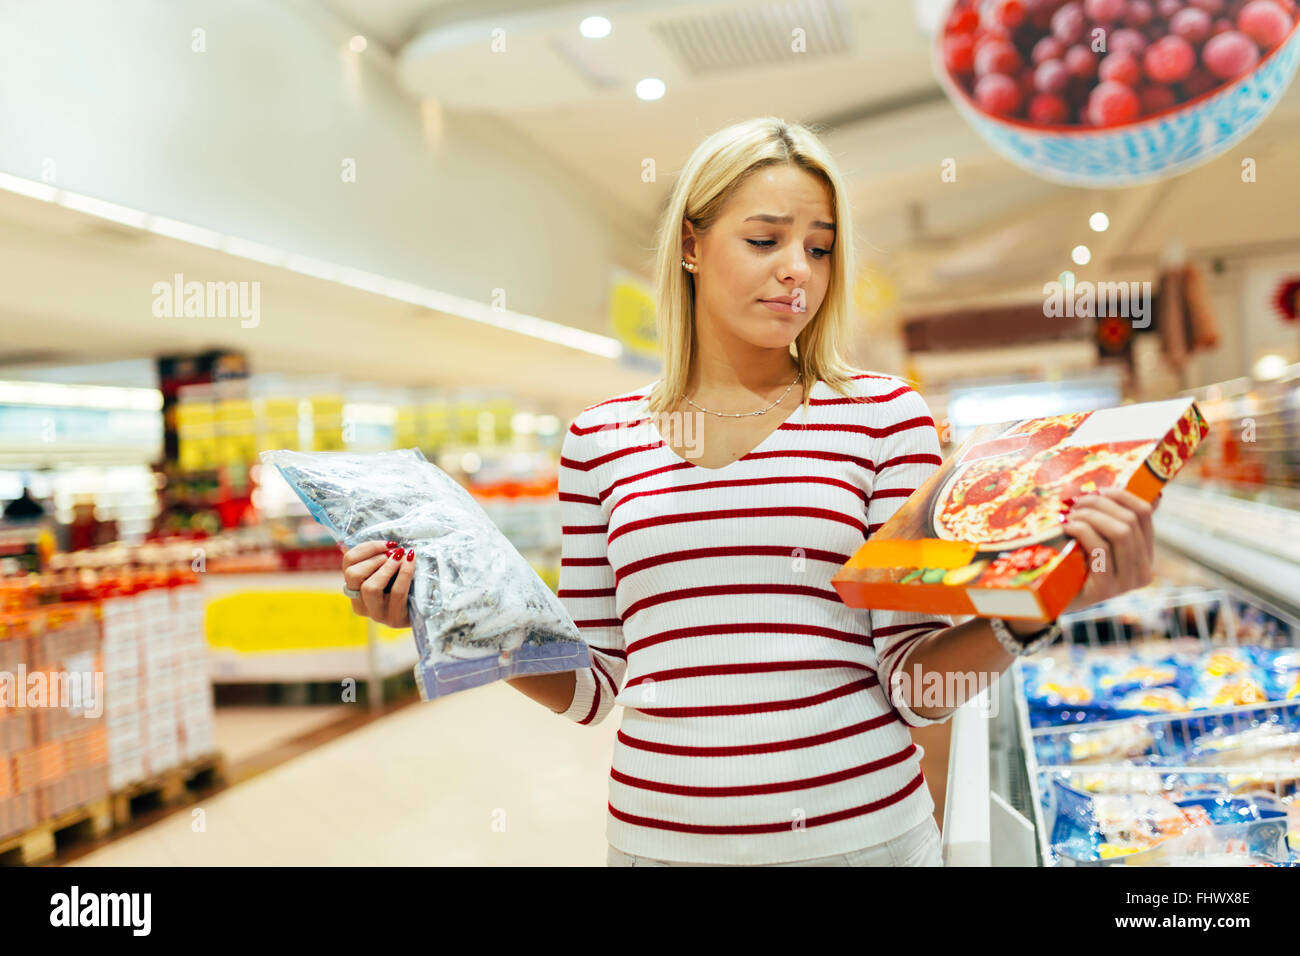 Beautiful woman deciding what to buy based on what is healthier - Stock Image